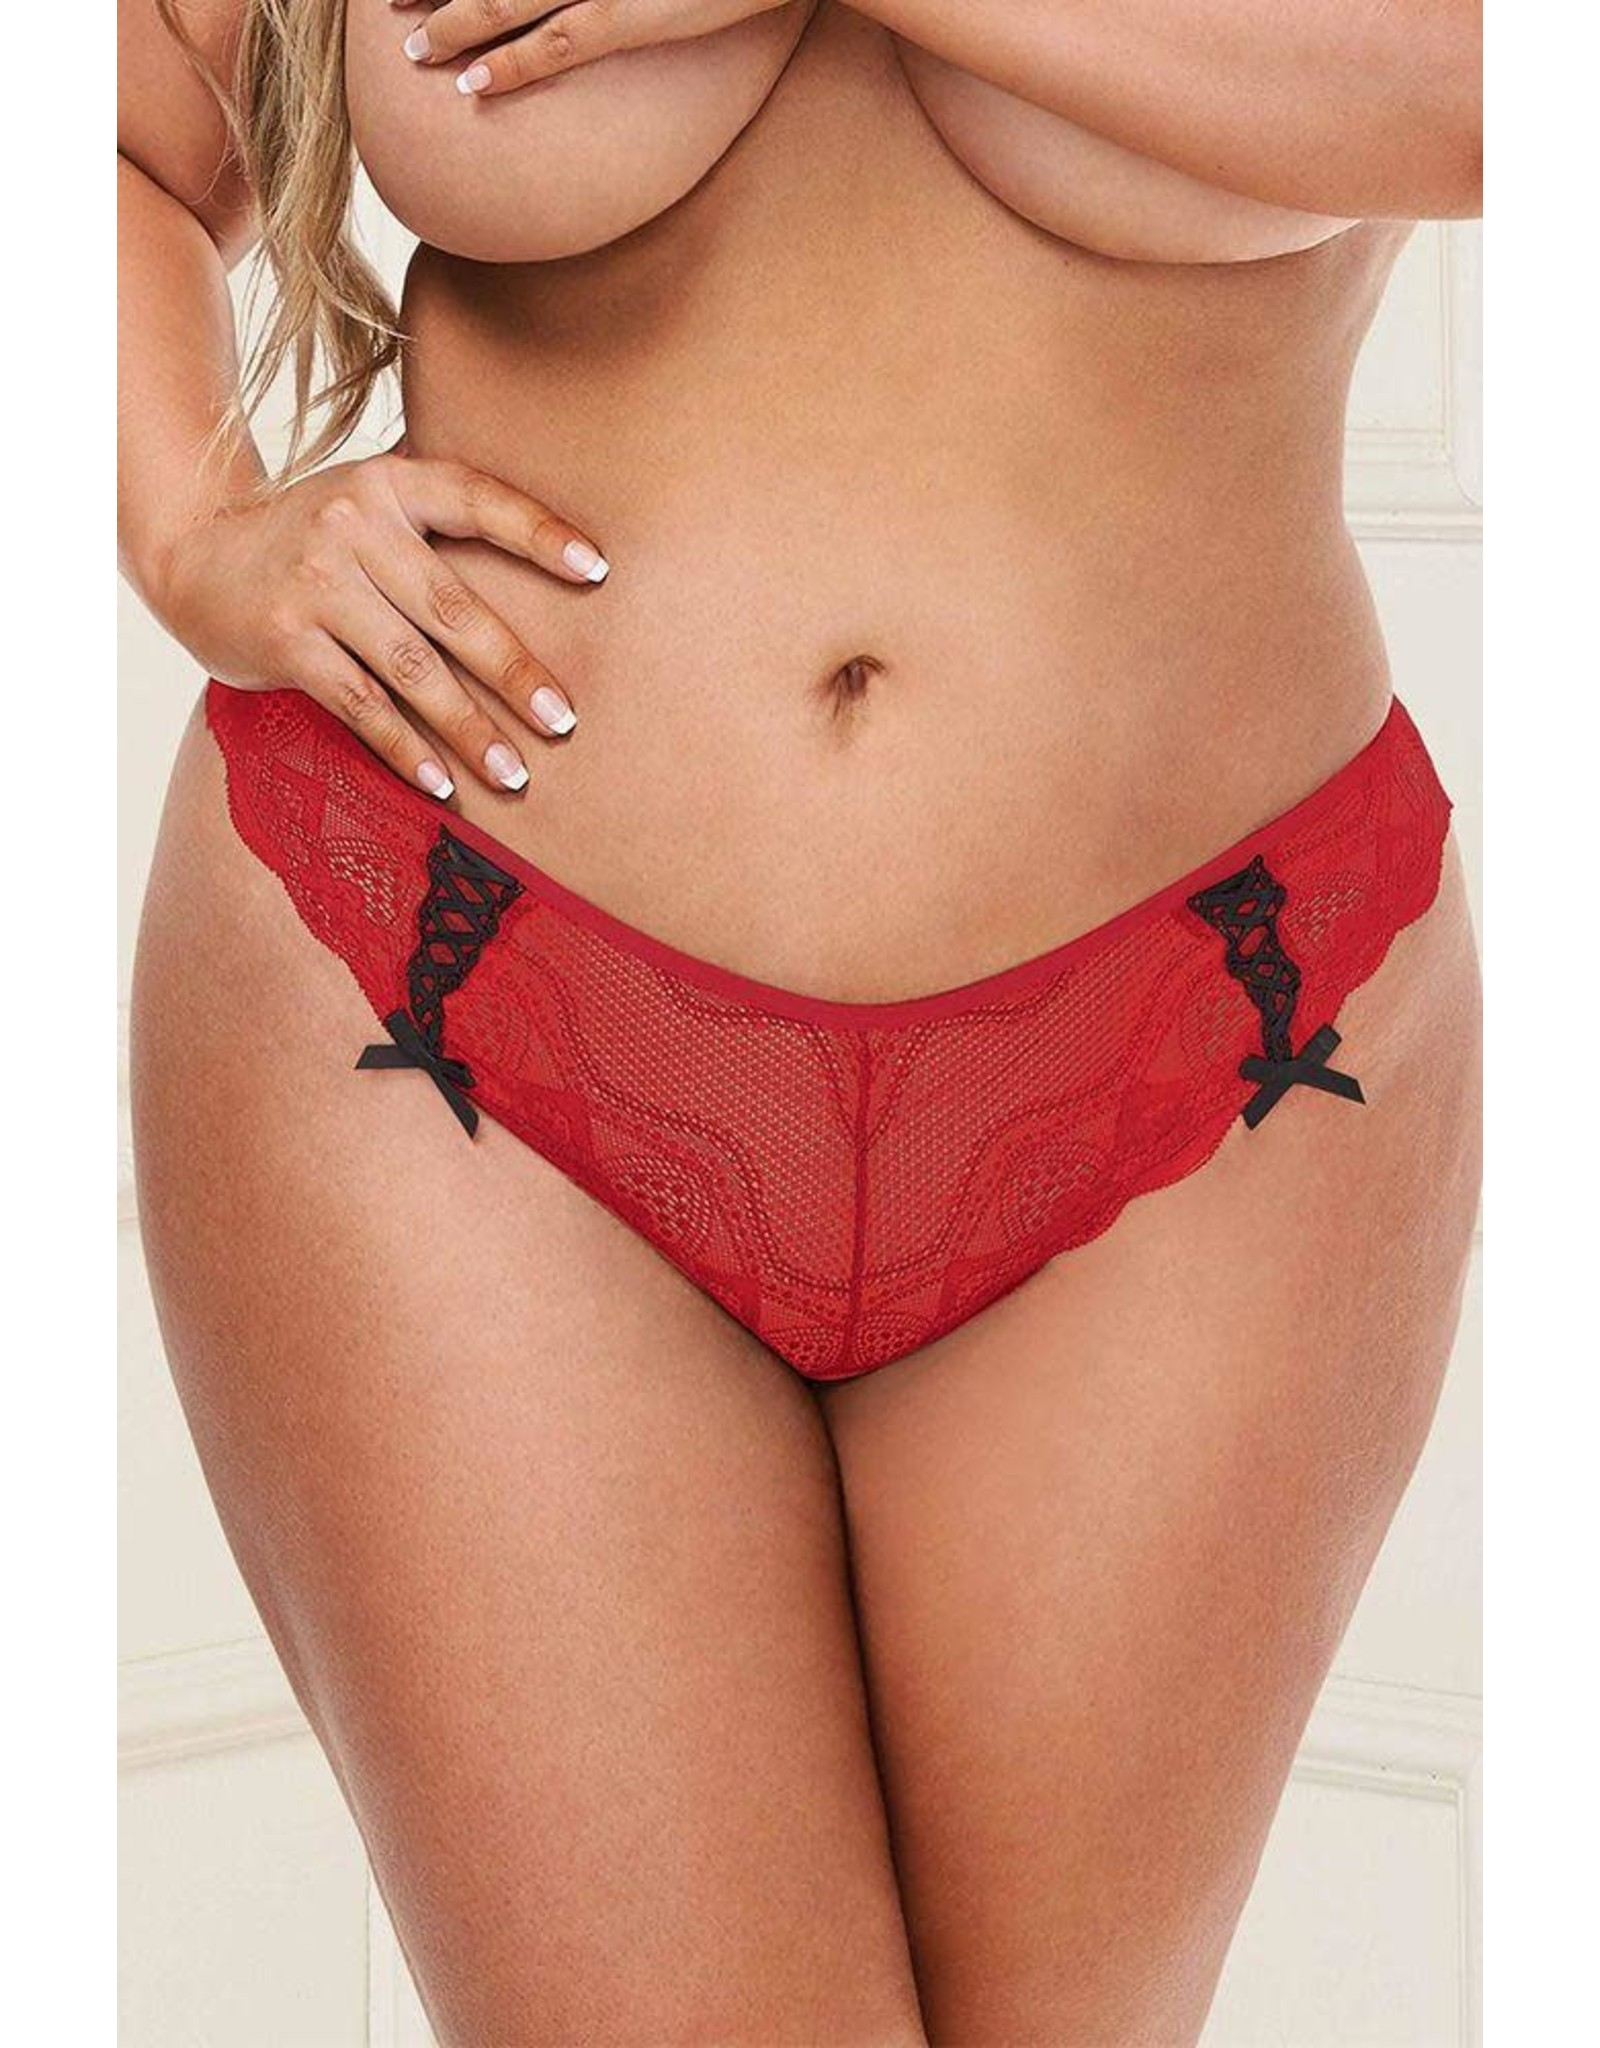 BACI - RIBBON ON THE WIND LACE BOYSHORT - RED - QUEEN SIZE